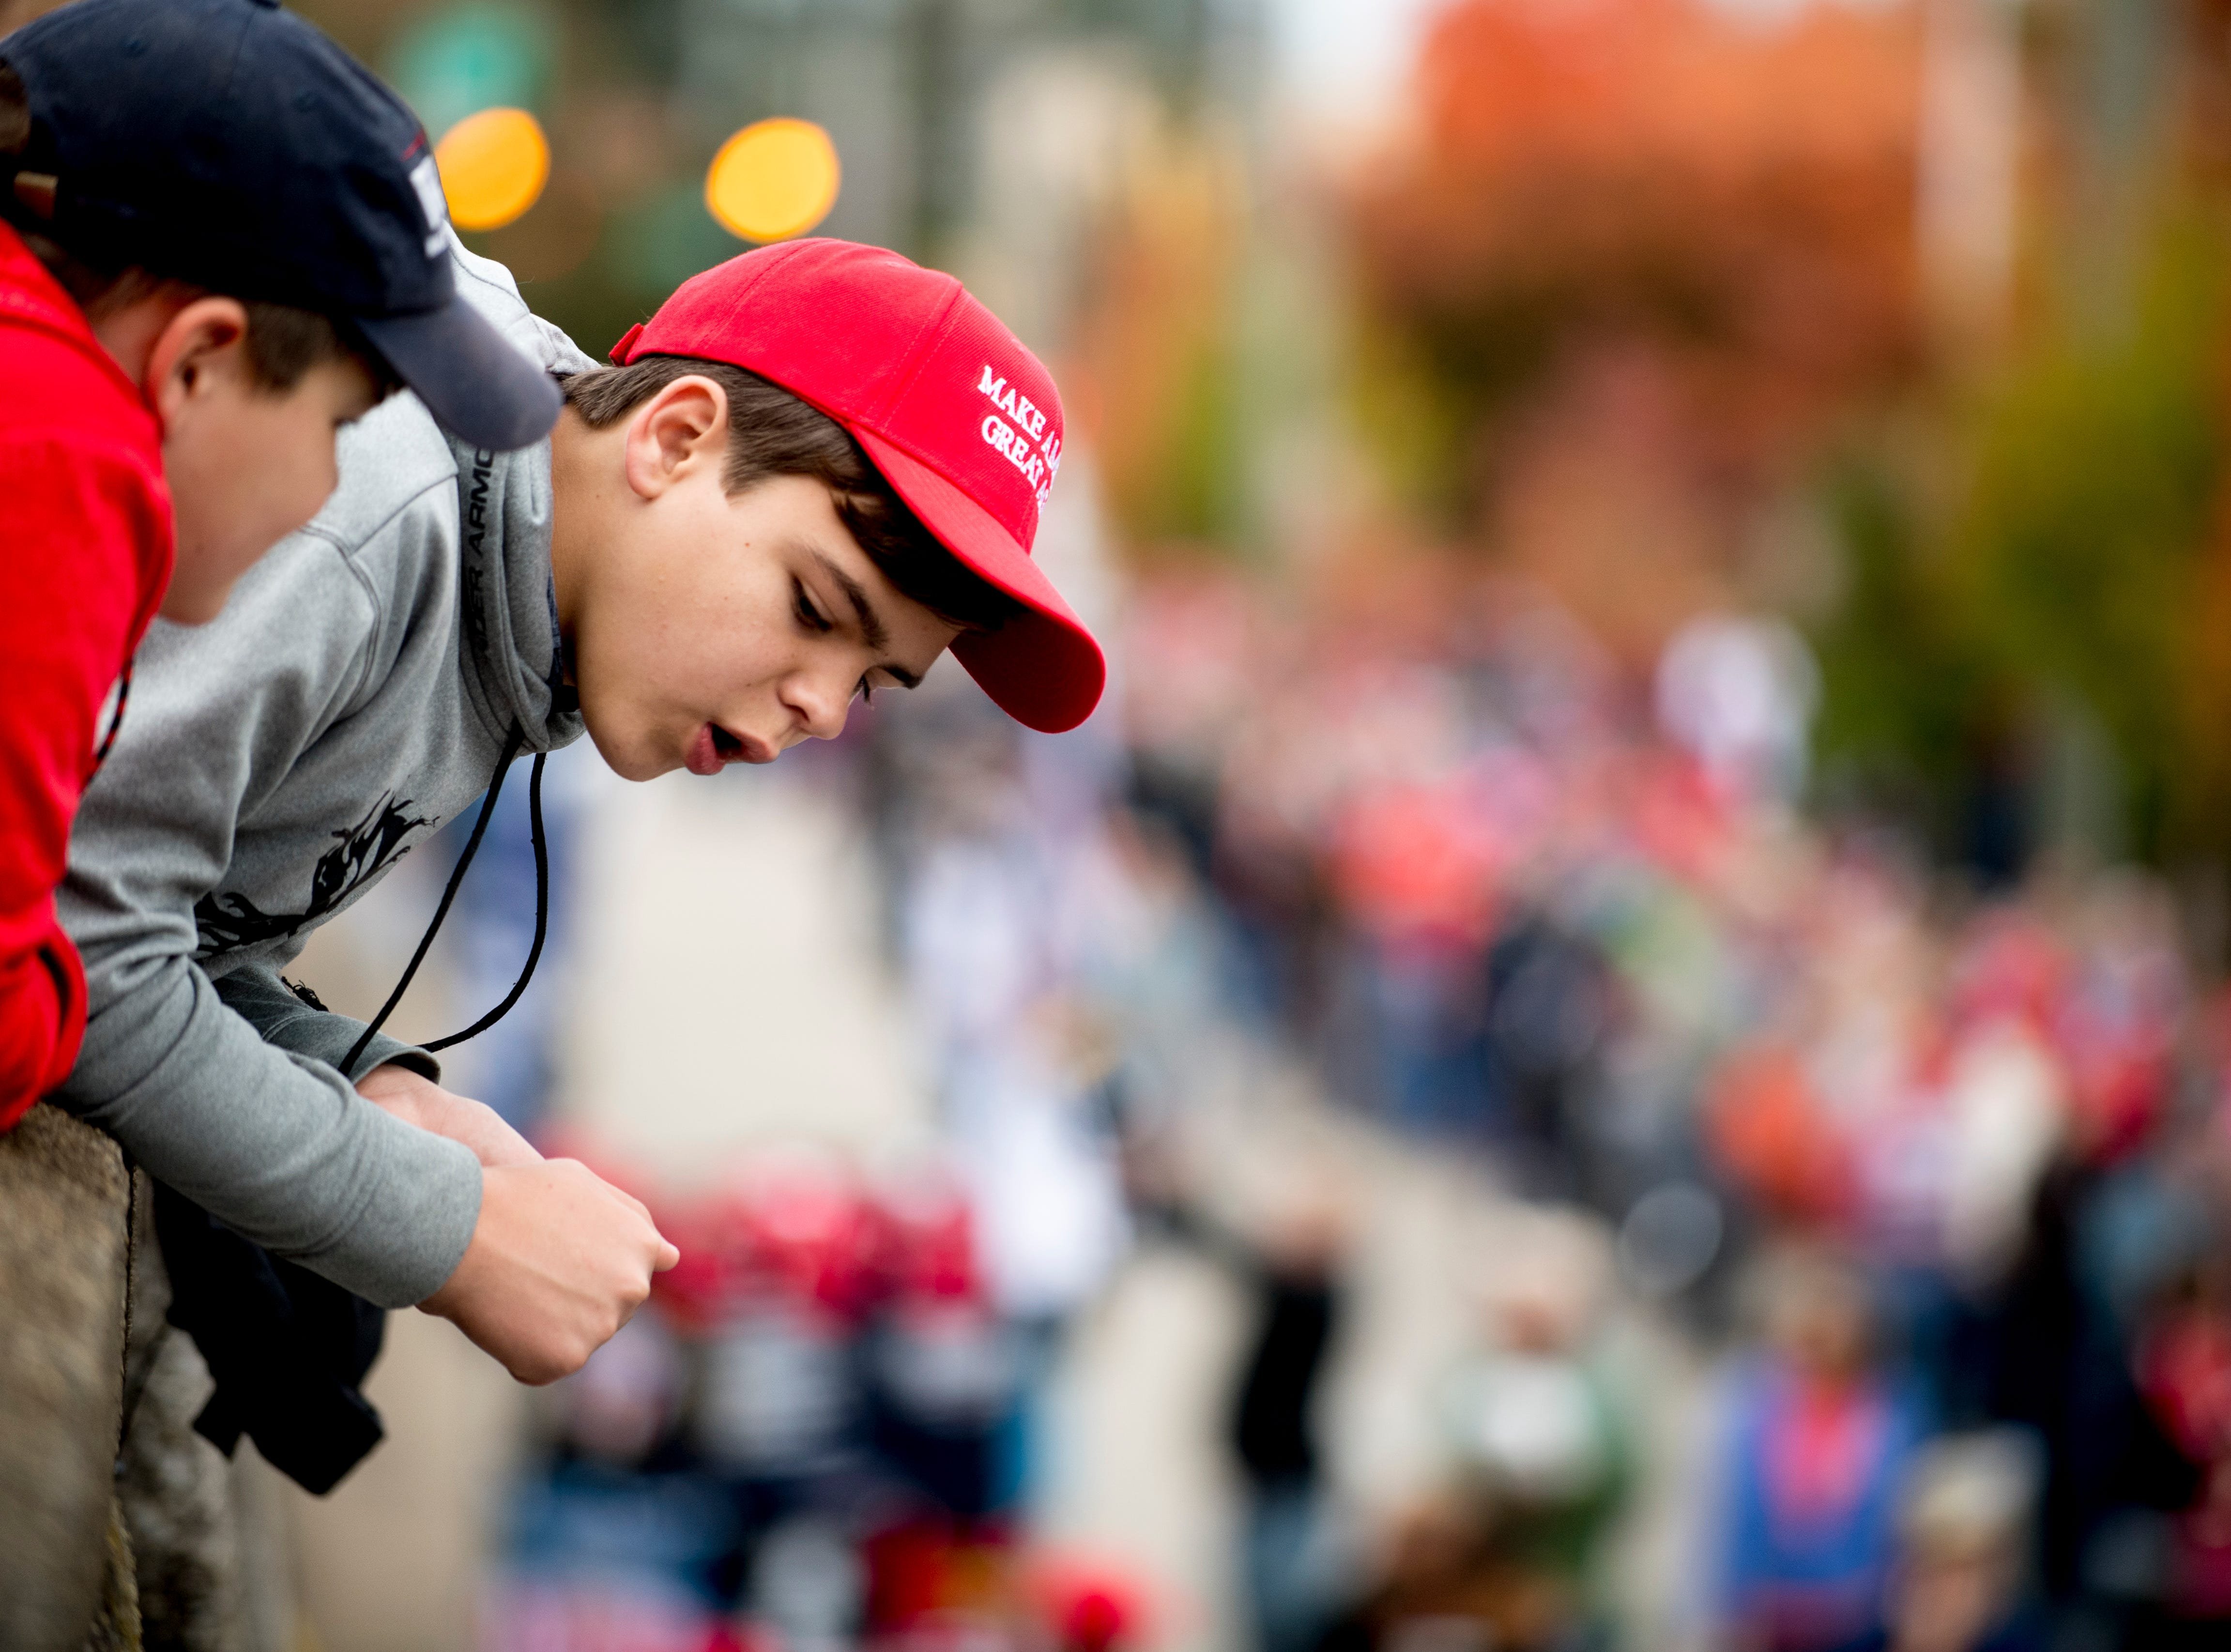 """Zeth Dishman, 13, and Jack Simmons, 11, both from Chattanooga, lean over a ledge for a better view ahead of President Donald J. Trump's """"Make America Great Again"""" Rally at McKenzie Arena in Chattanooga, Tennessee on Sunday, November 4, 2018."""